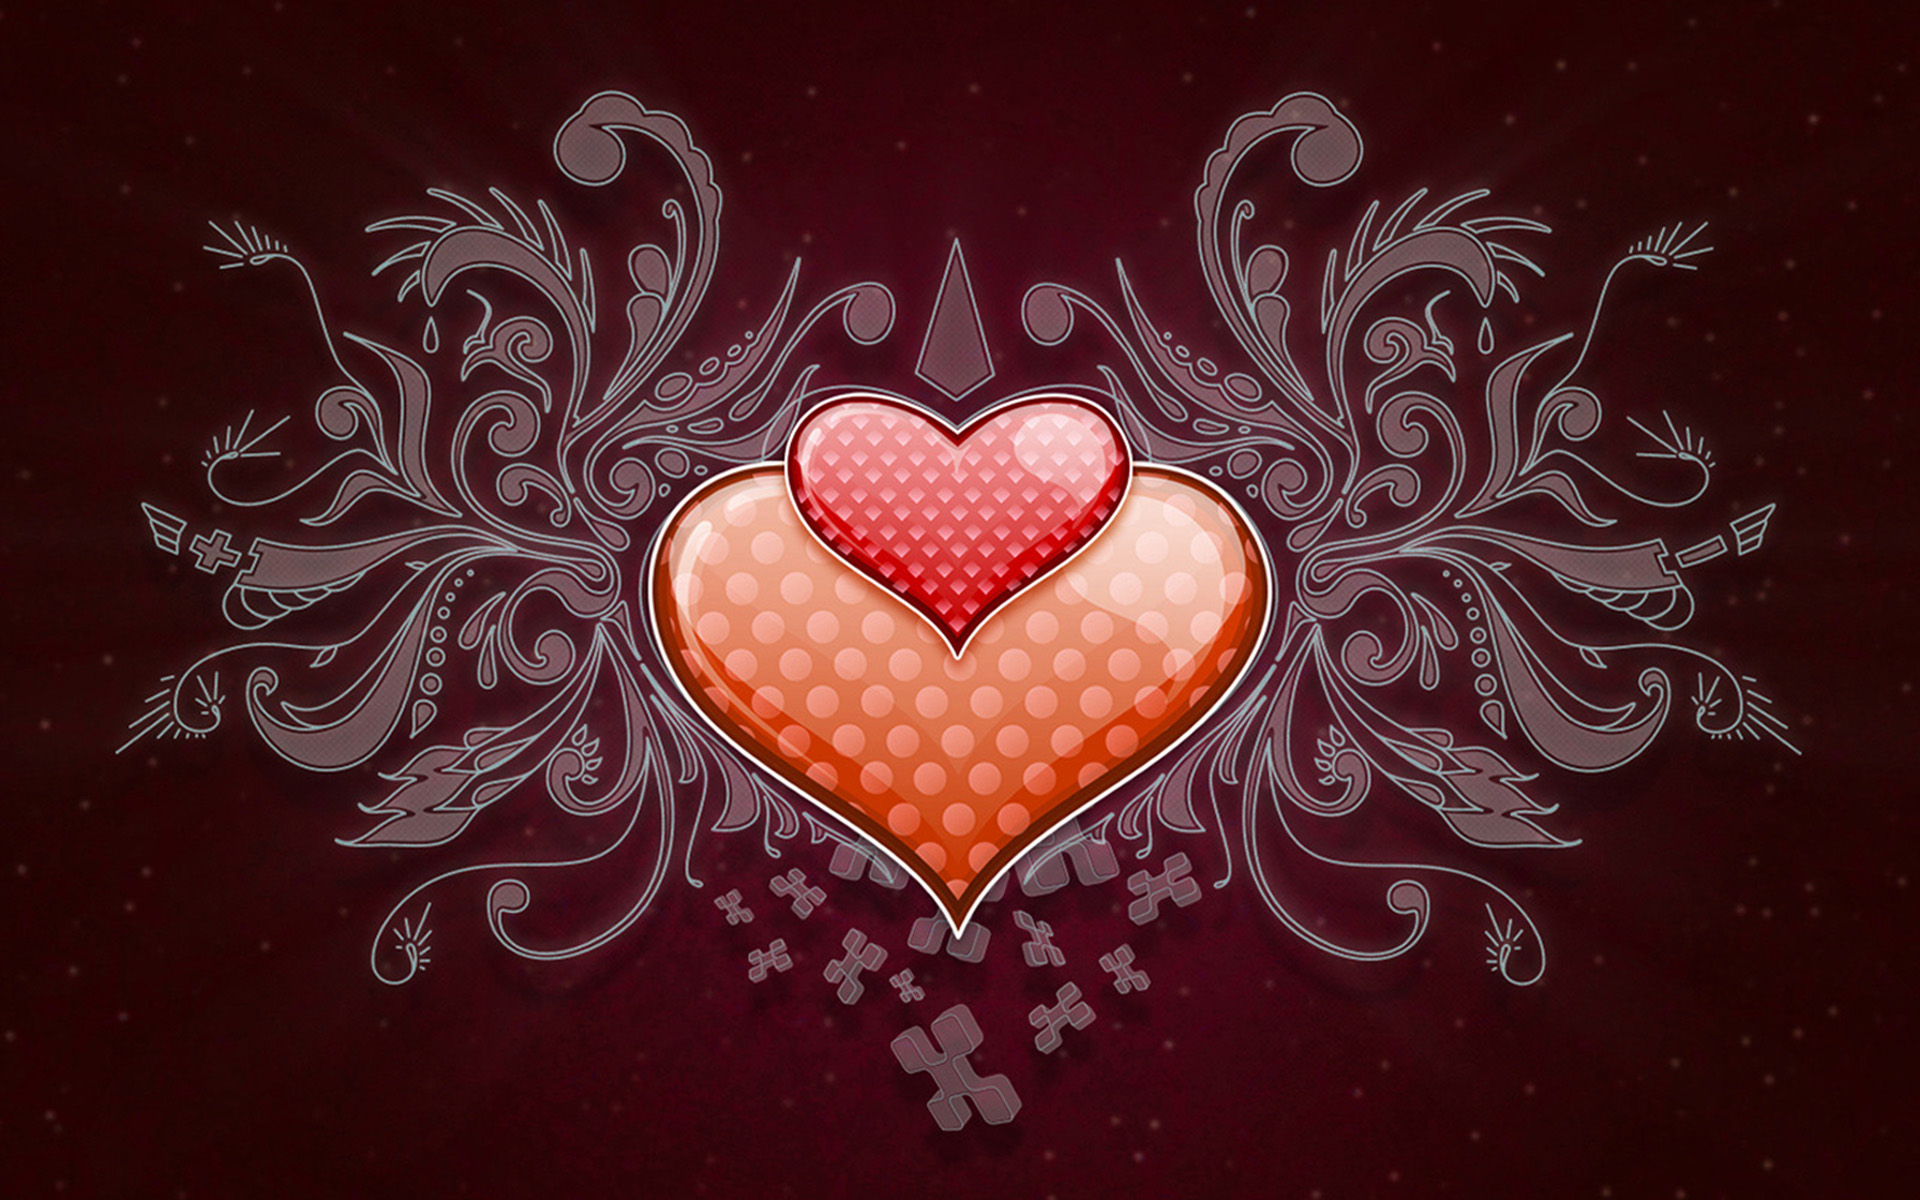 Love Wallpaper Big Size Hd : Heart Love Vector Wide HD Wallpapers custom size generator